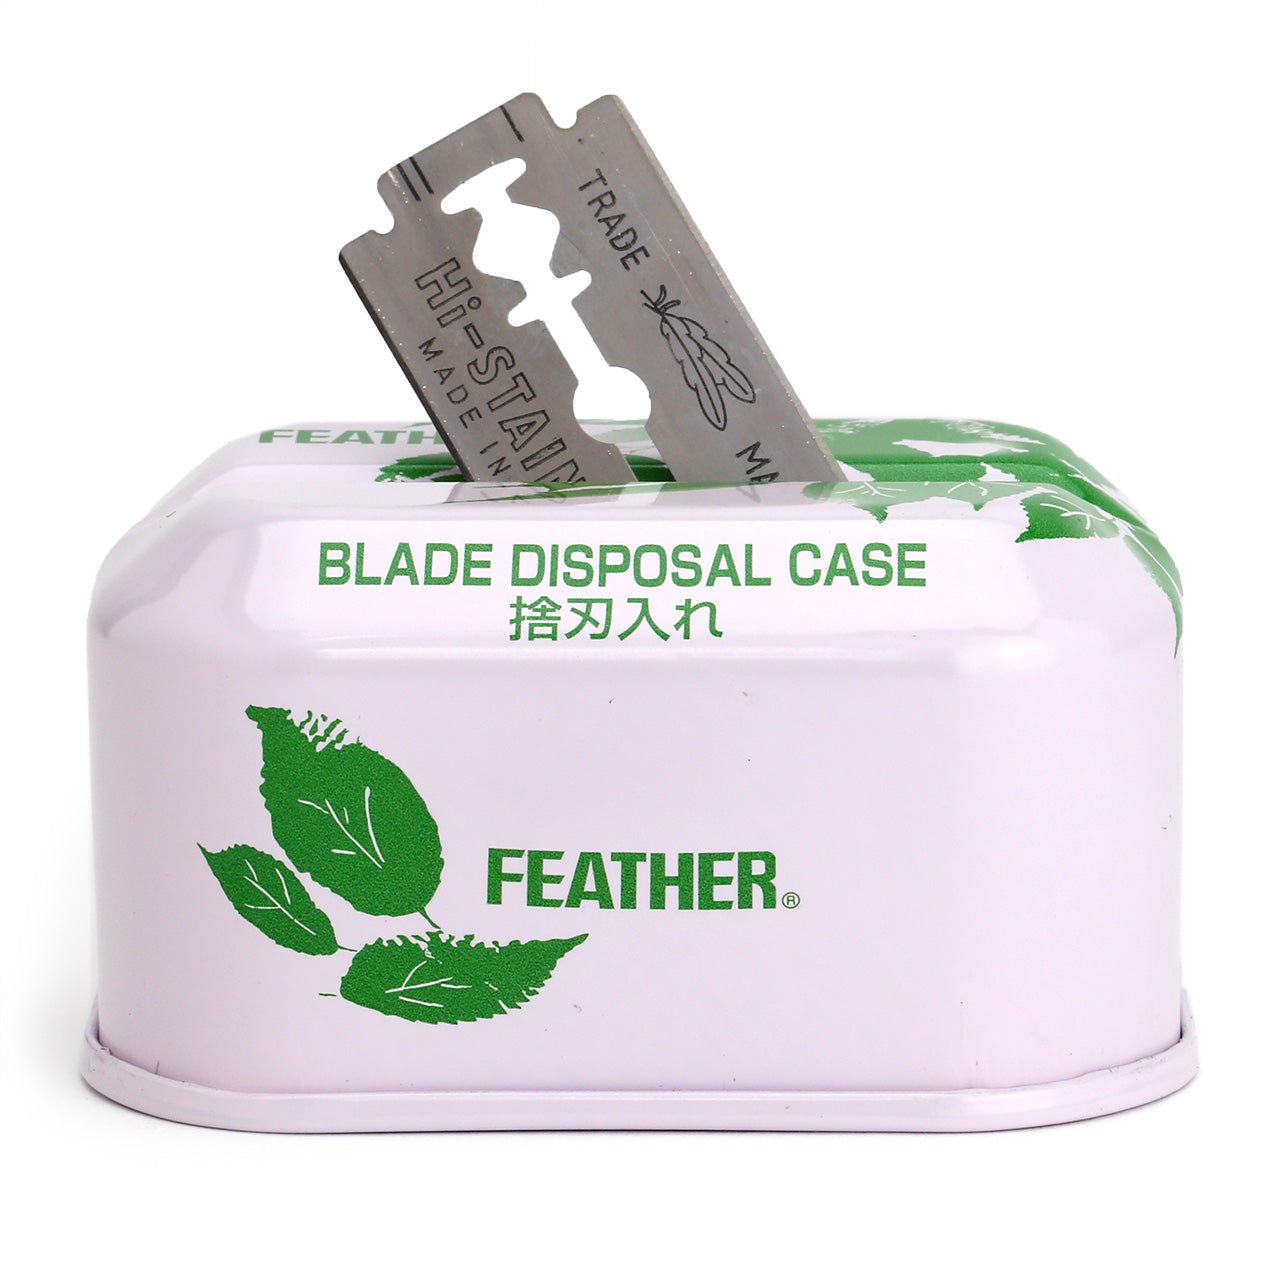 Feather blade bank disposal case, showing blade for reference